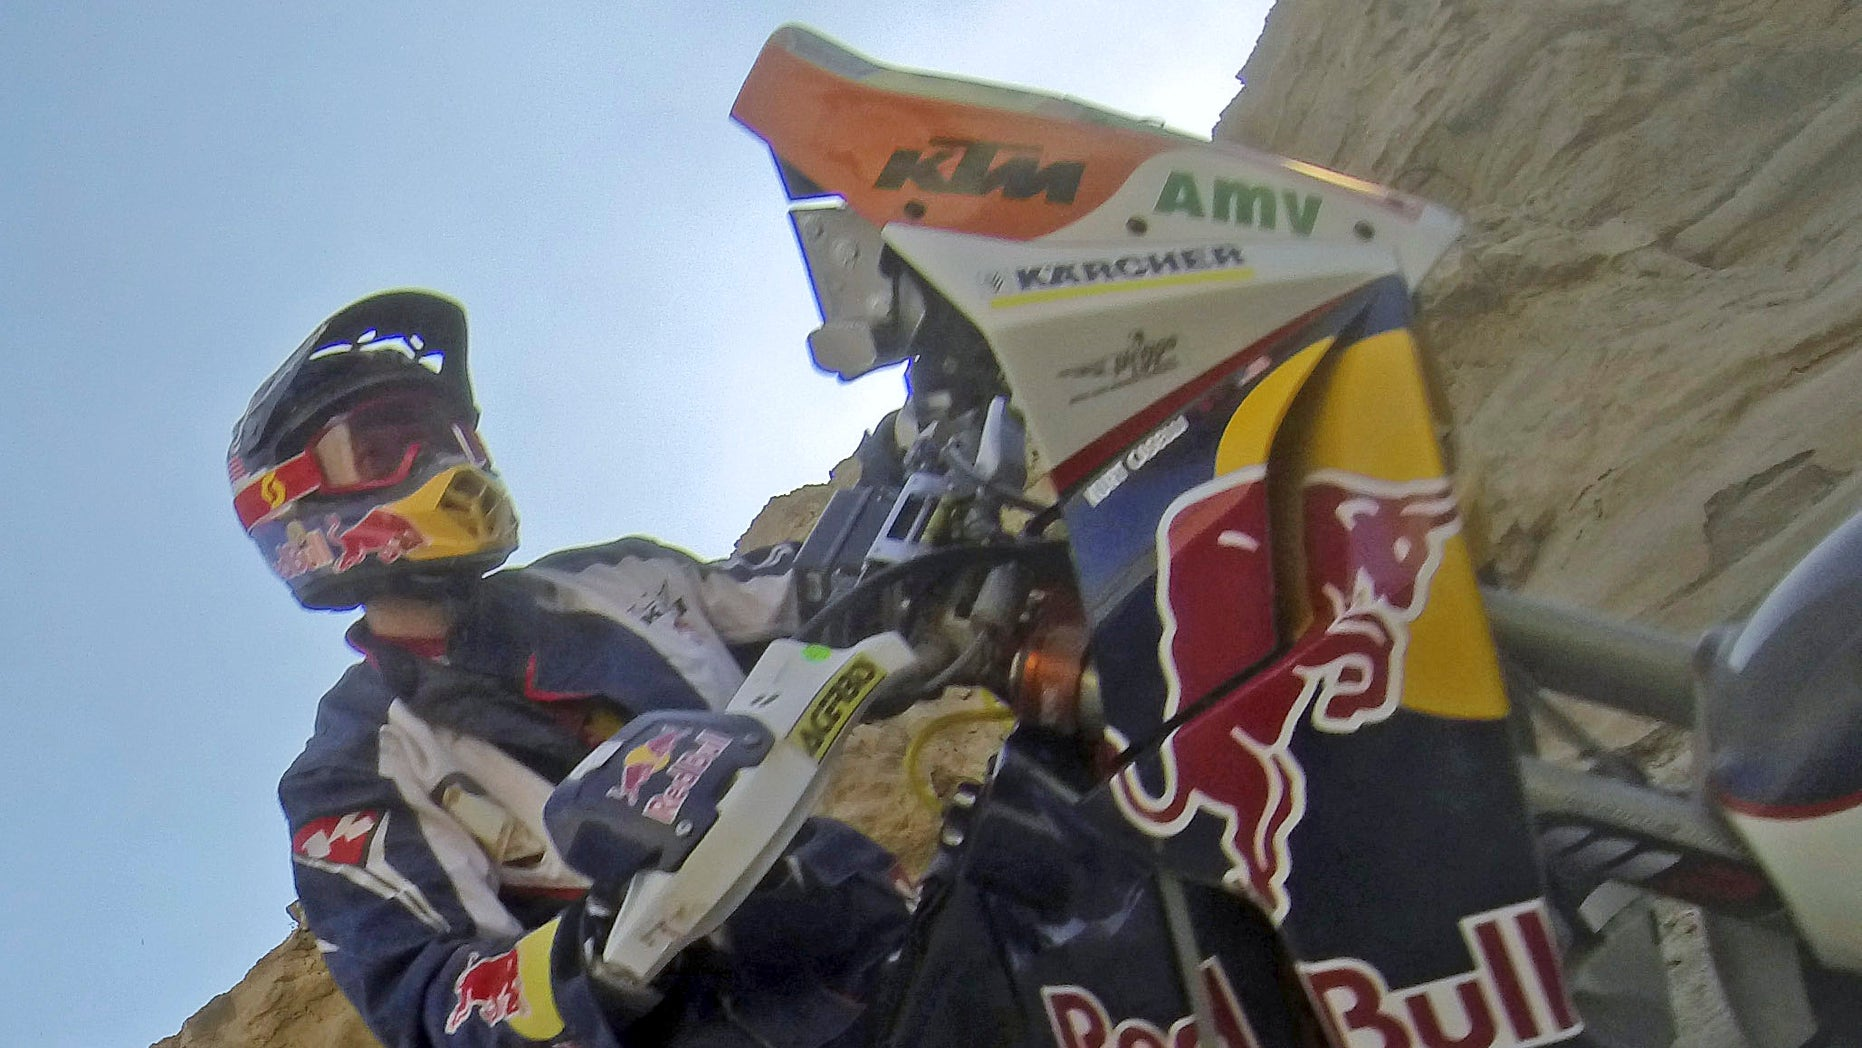 January 8, 2013 Kurt Caselli of the U.S. rides his KTM during the 4th stage of the Dakar Rally 2013 from Nazca to Arequipa.